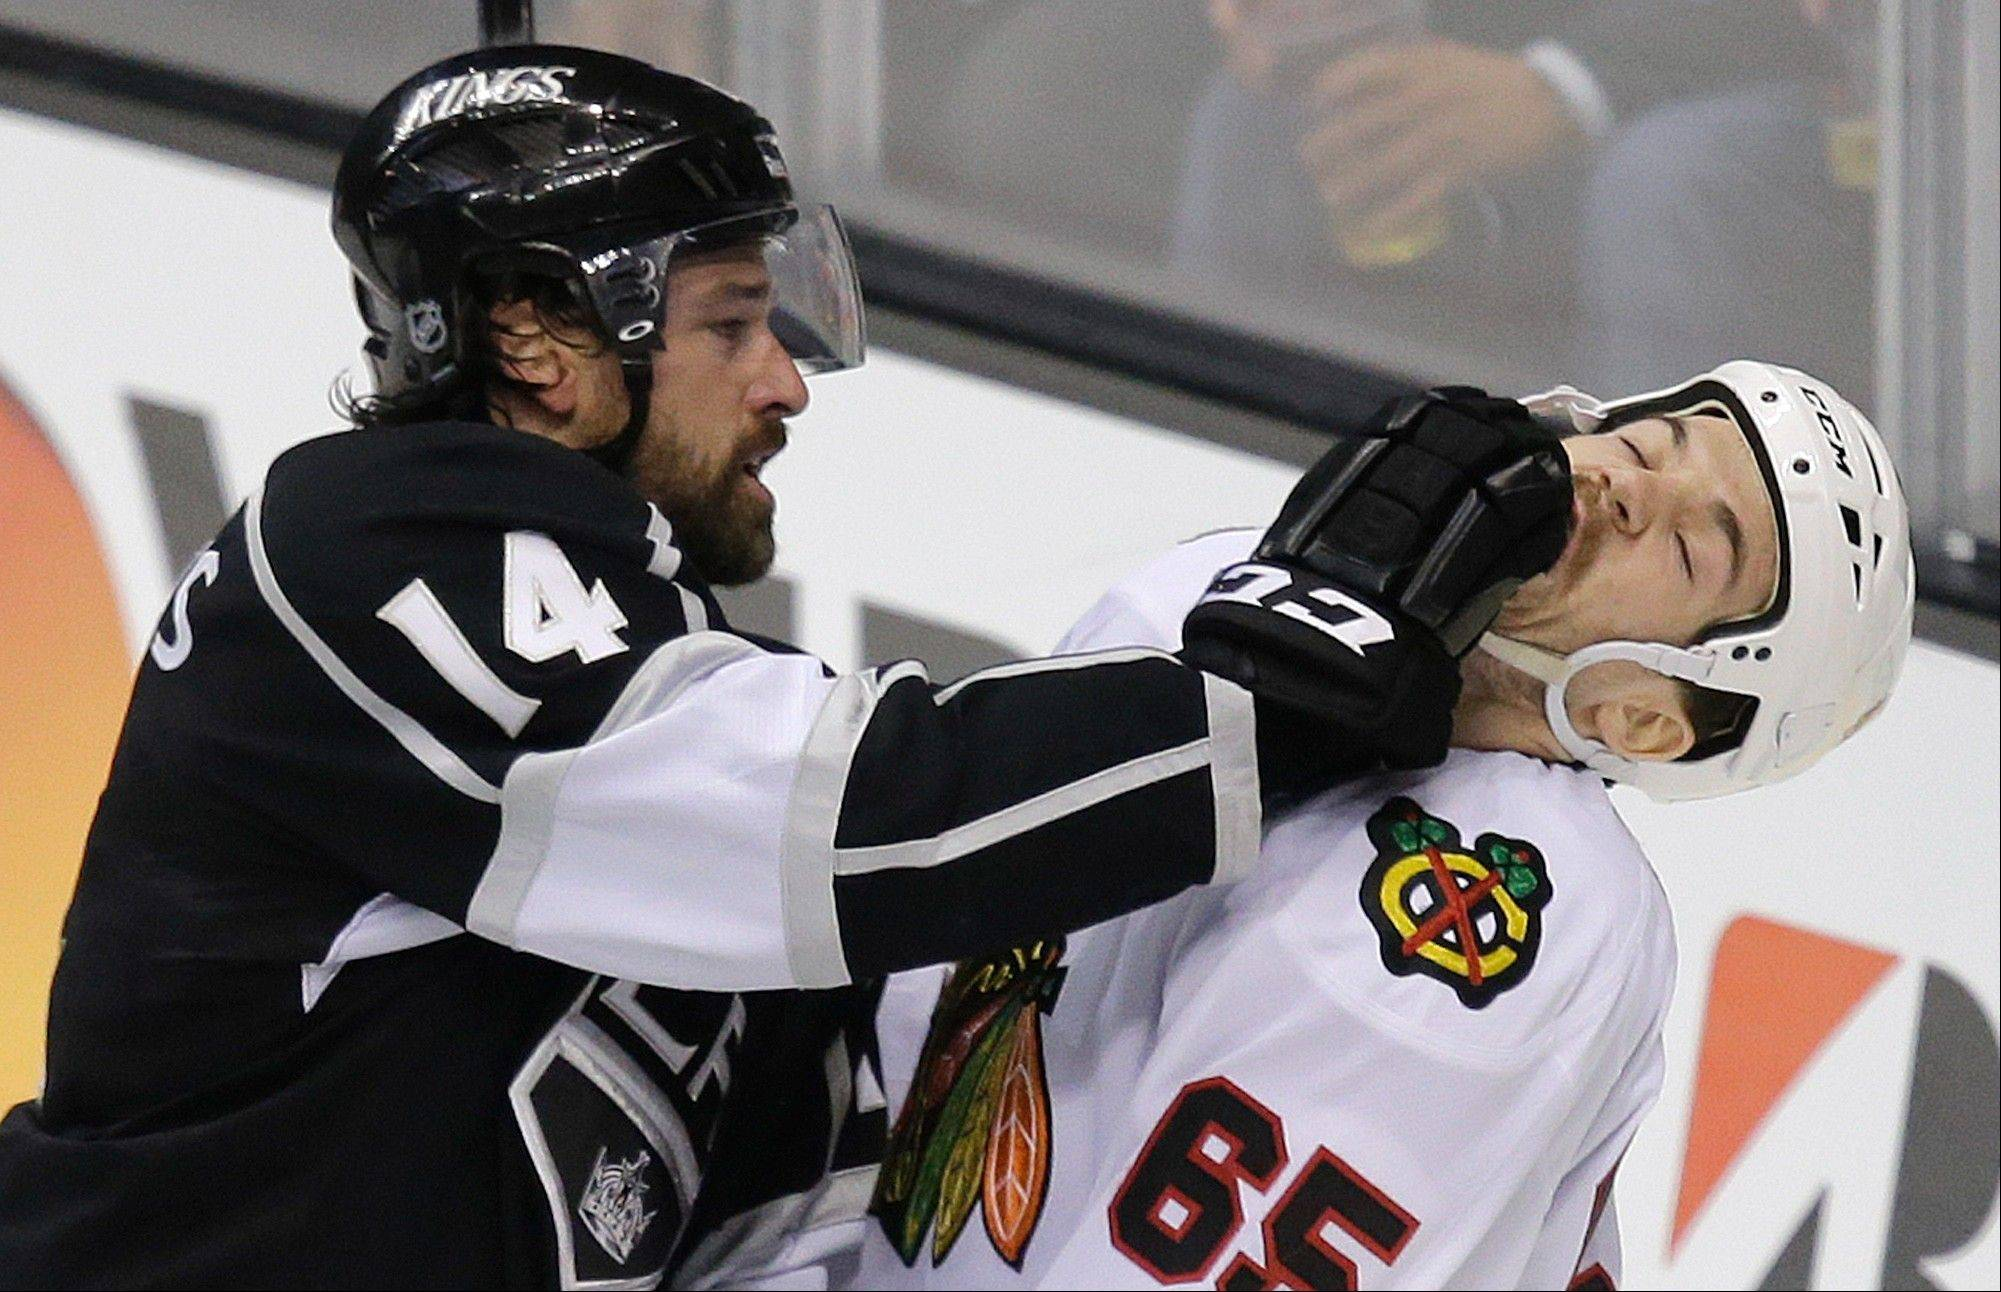 Los Angeles Kings right wing Justin Williams fights with Chicago Blackhawks center Andrew Shaw during the second period of Game 3 of the Western Conference finals Tuesday in Los Angeles.